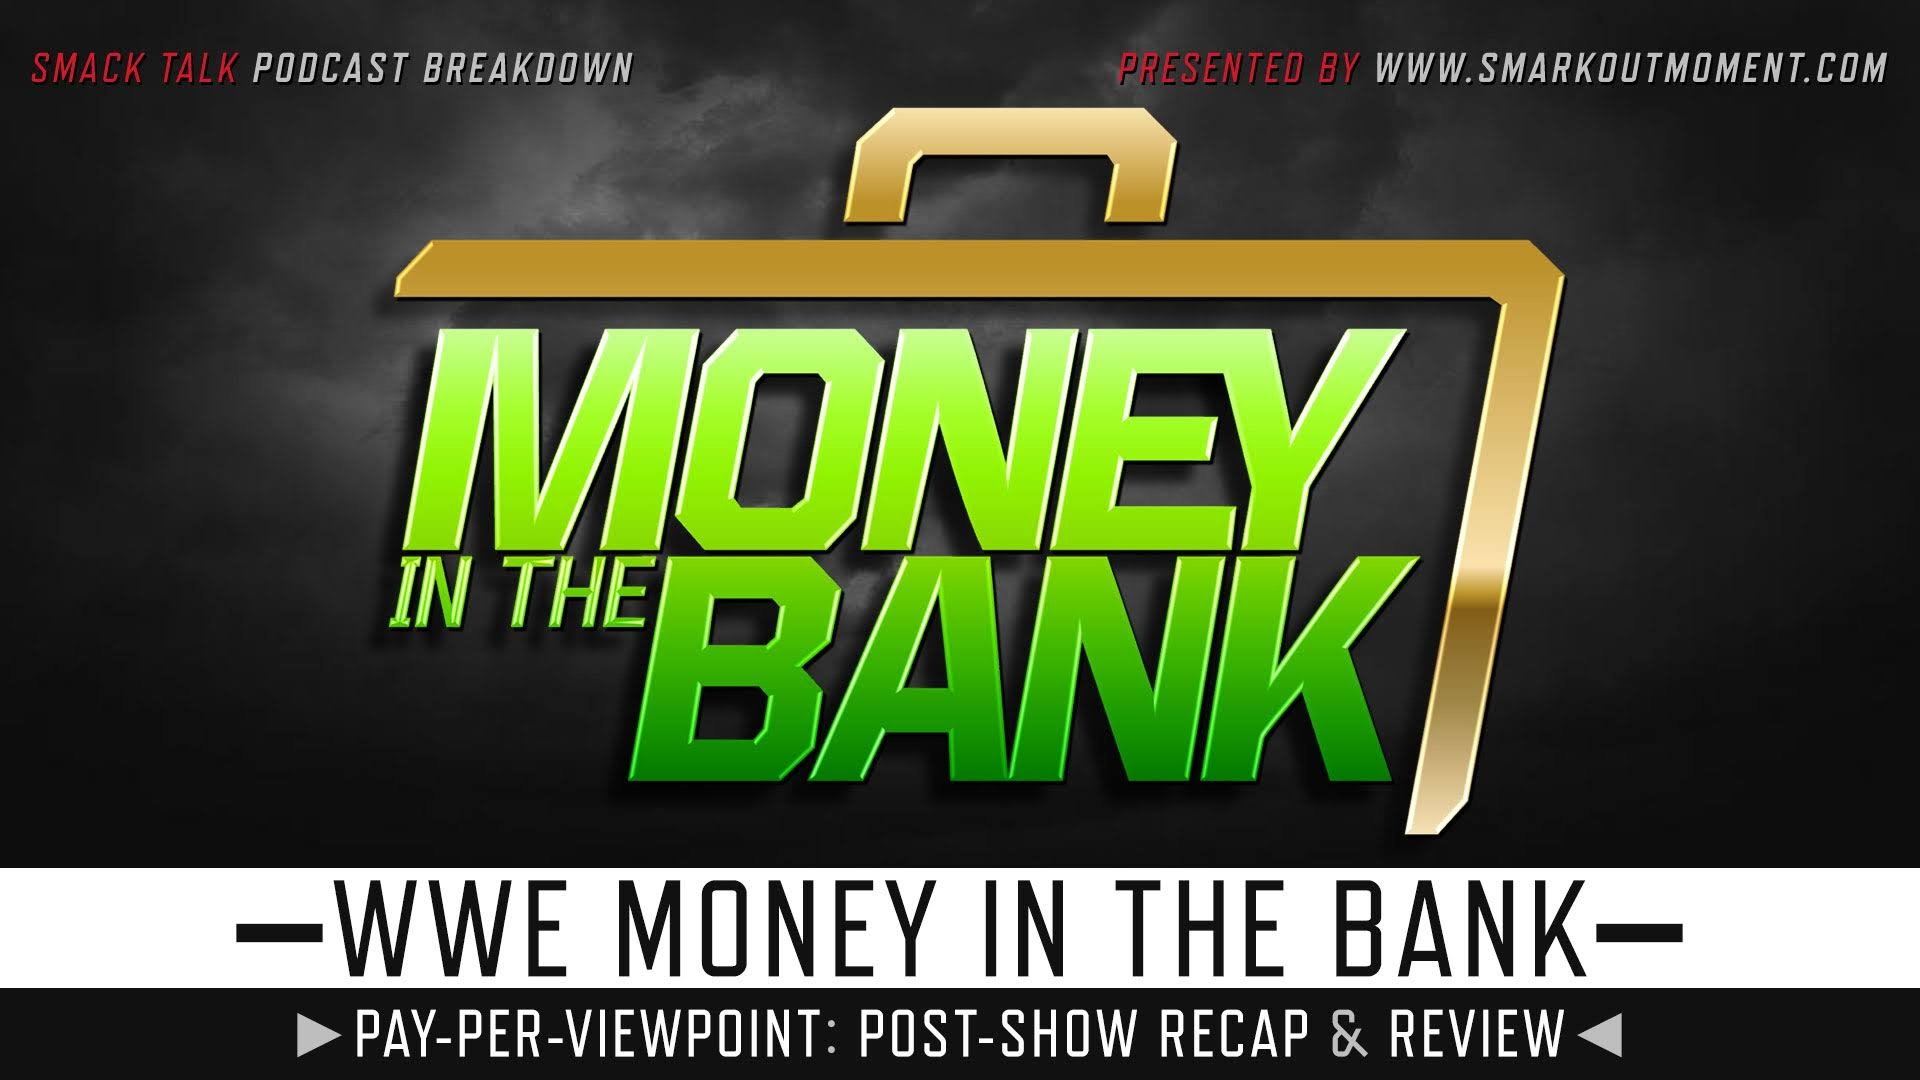 WWE Money in the Bank 2019 Recap and Review Podcast